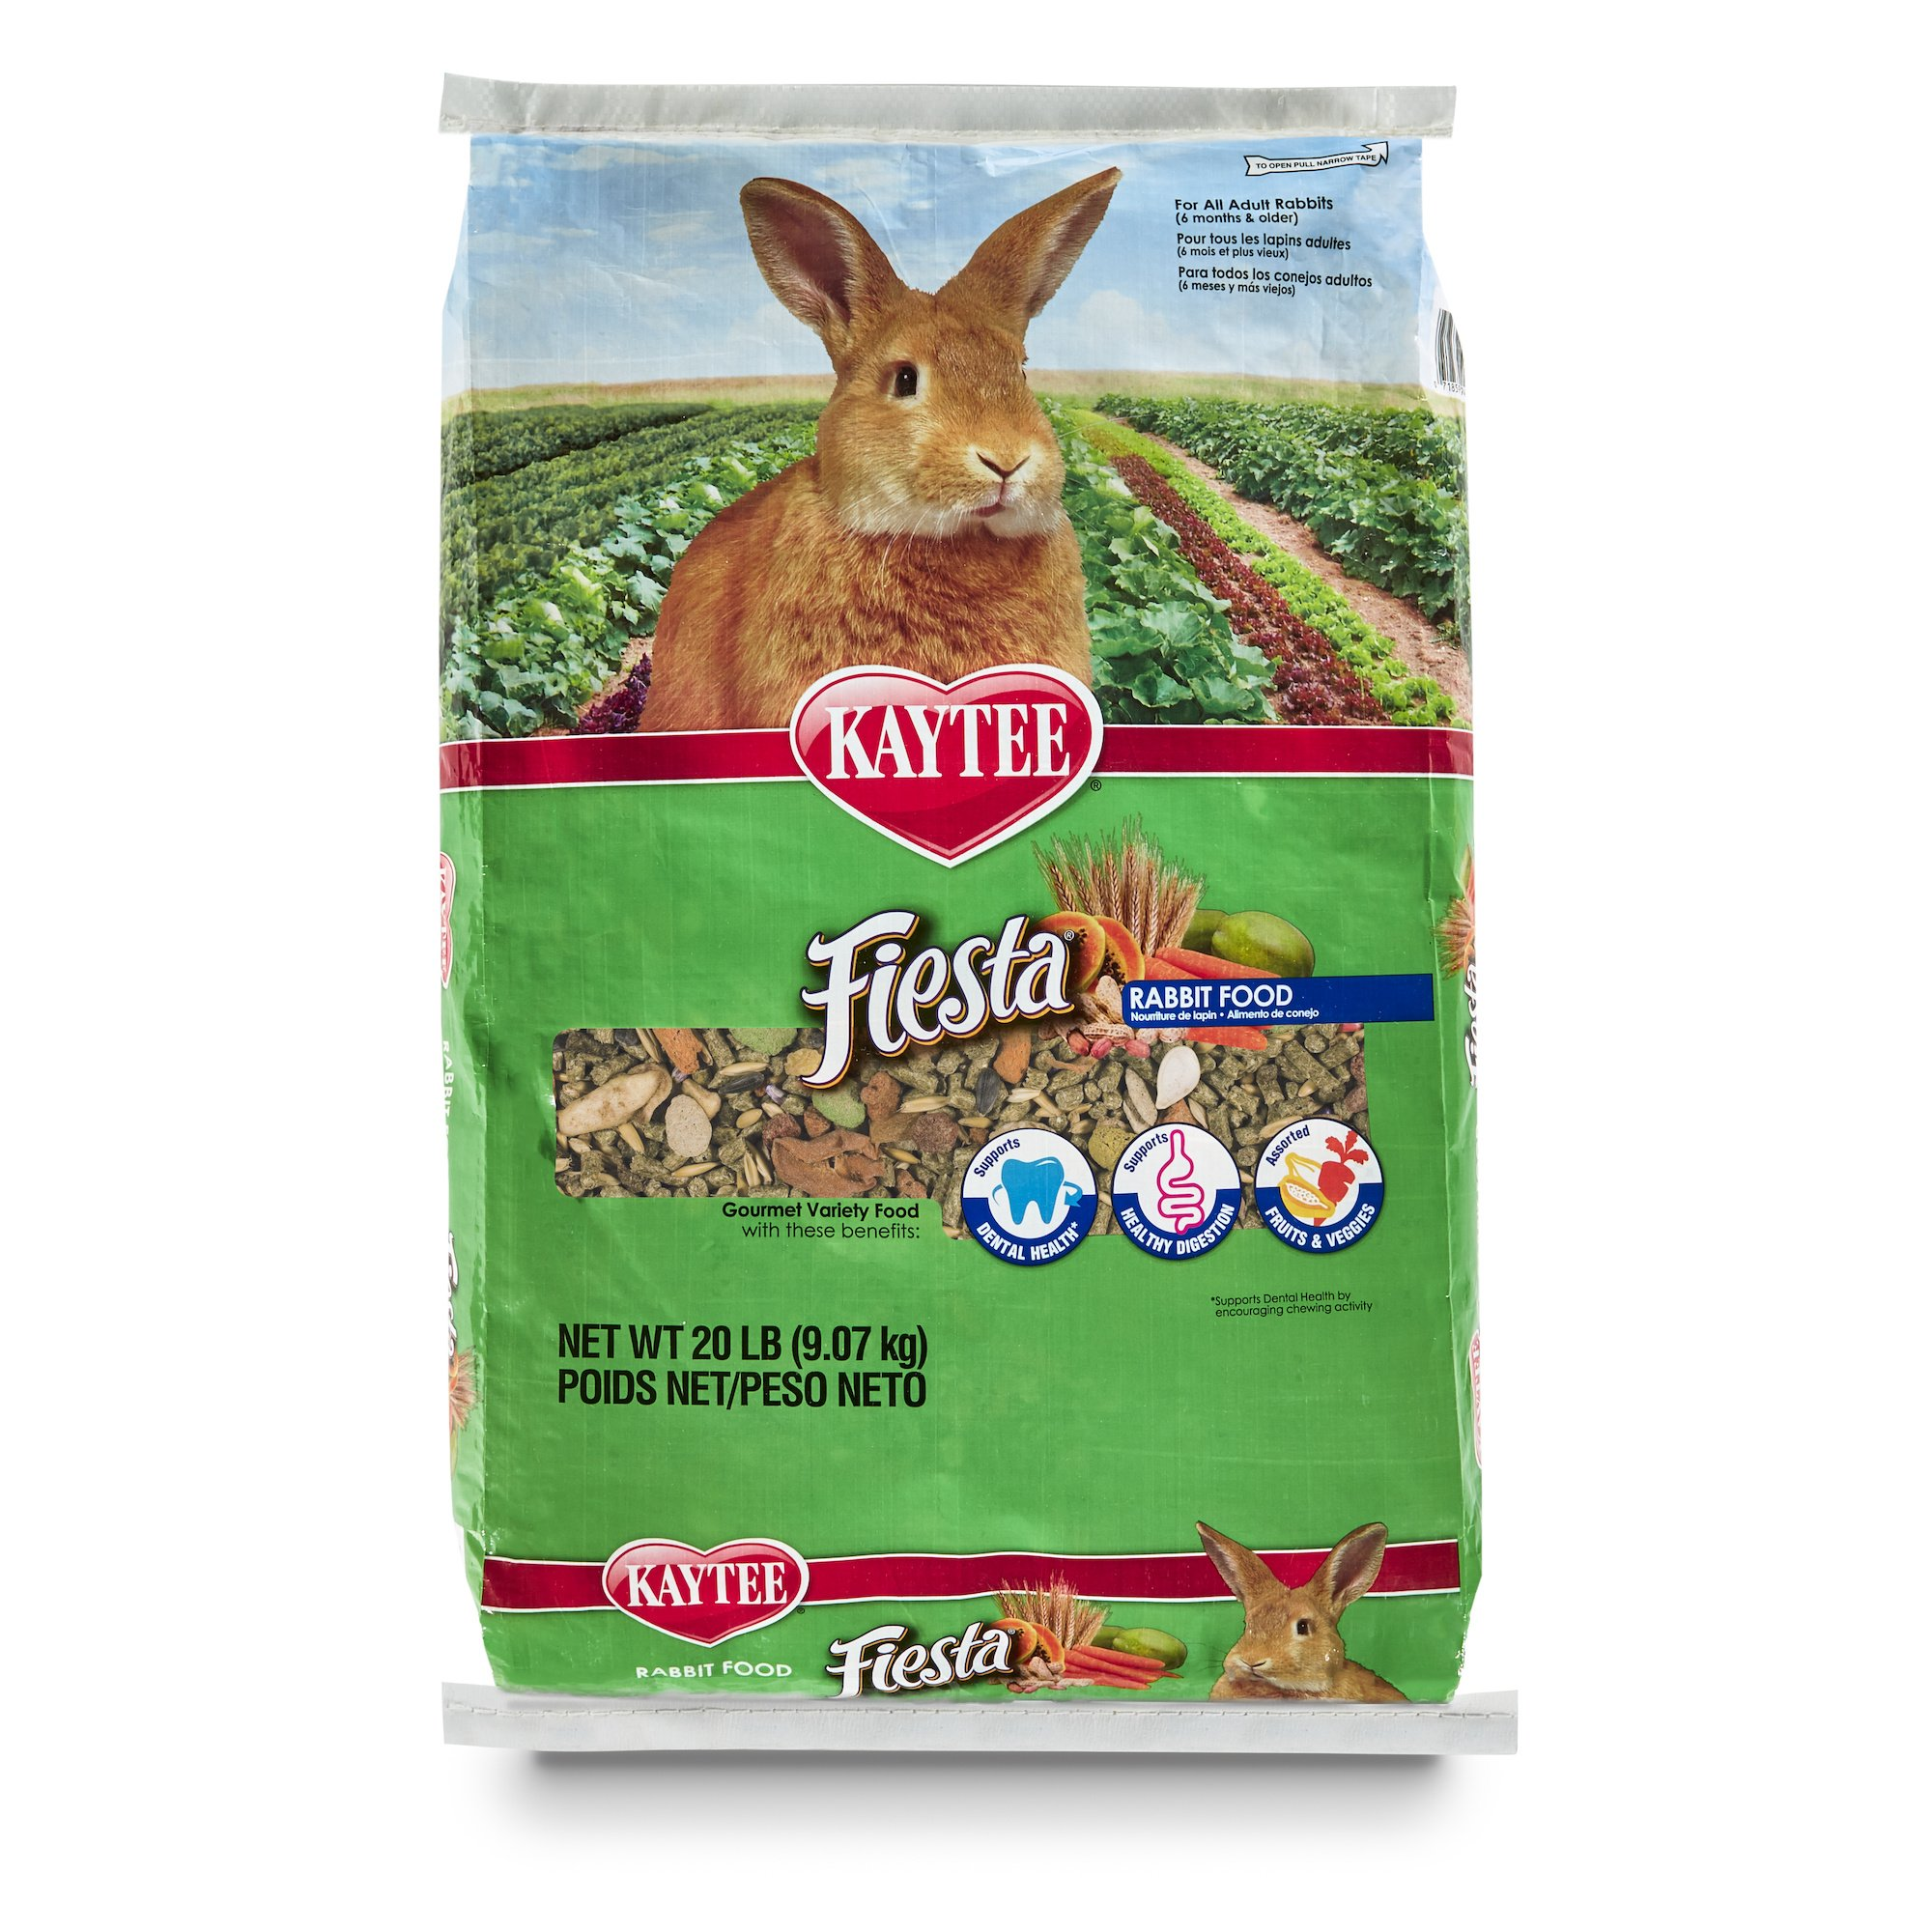 Kaytee Fiesta Rabbit Food, 20 lb